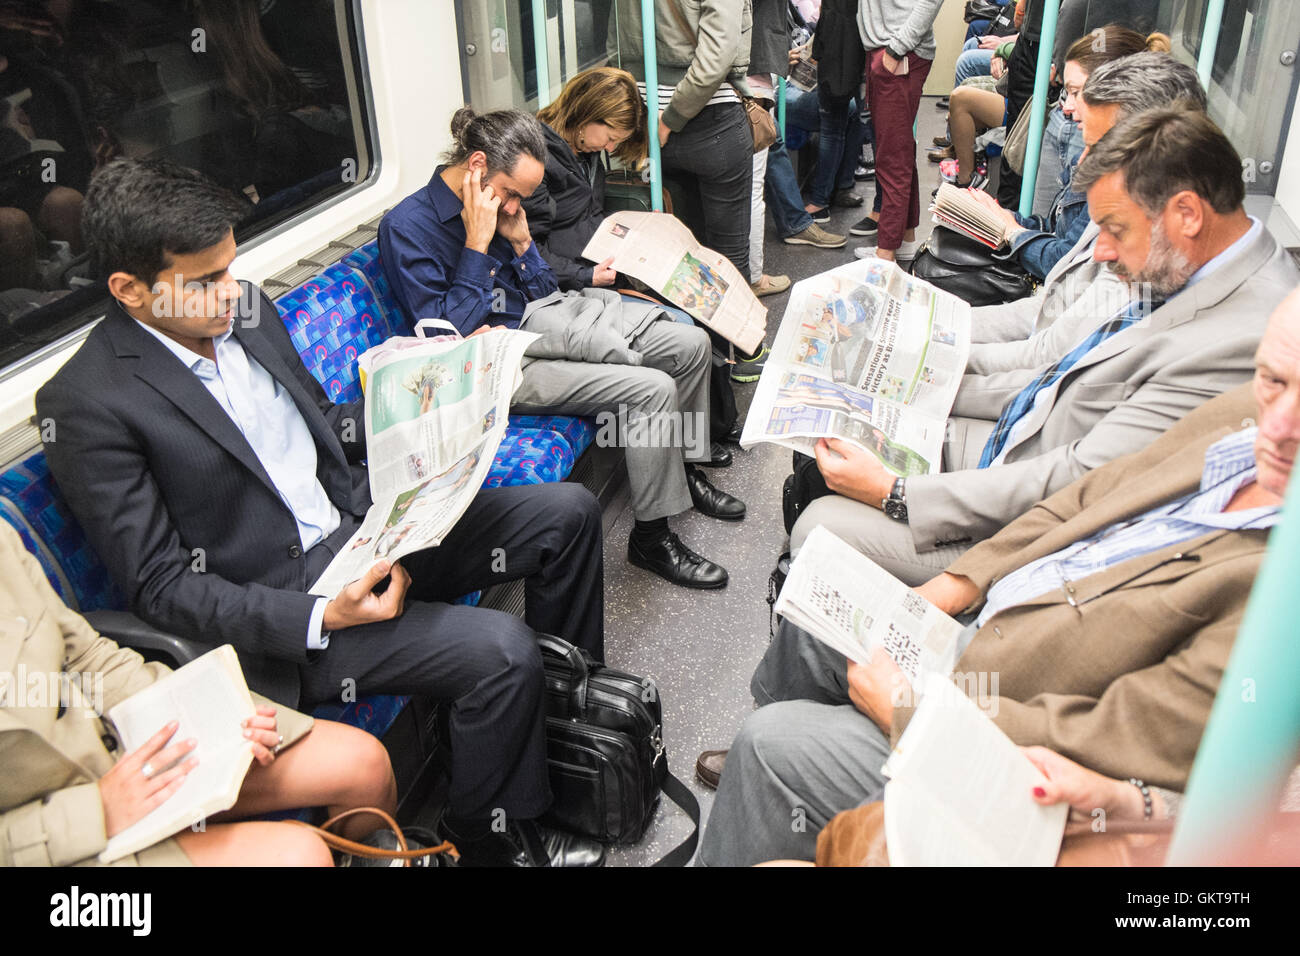 Locals reading newspapers and books inside London Underground tube train.About to arrive at Waterloo tube station,London.England - Stock Image